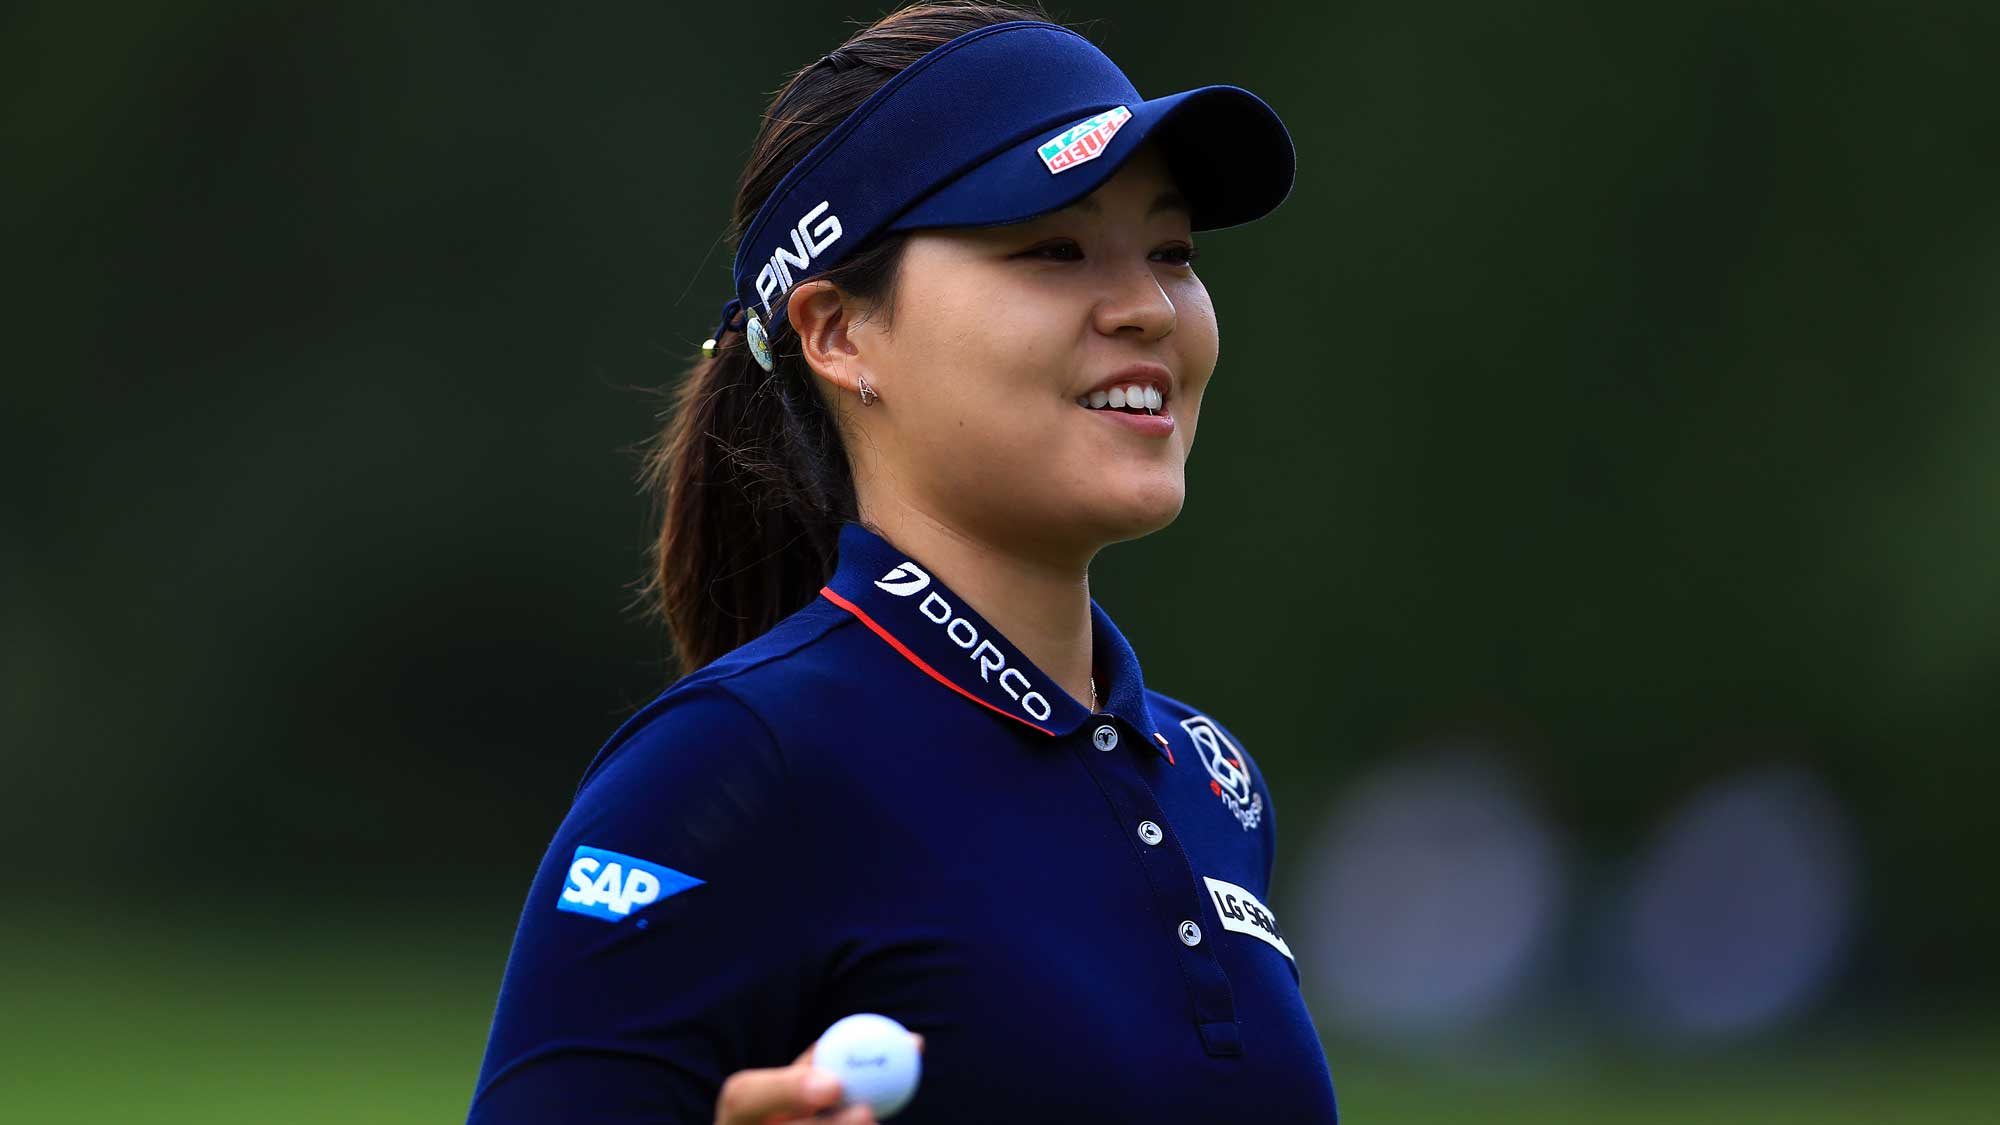 LPGA star to donate entire event earnings to Hurricane Harvey relief